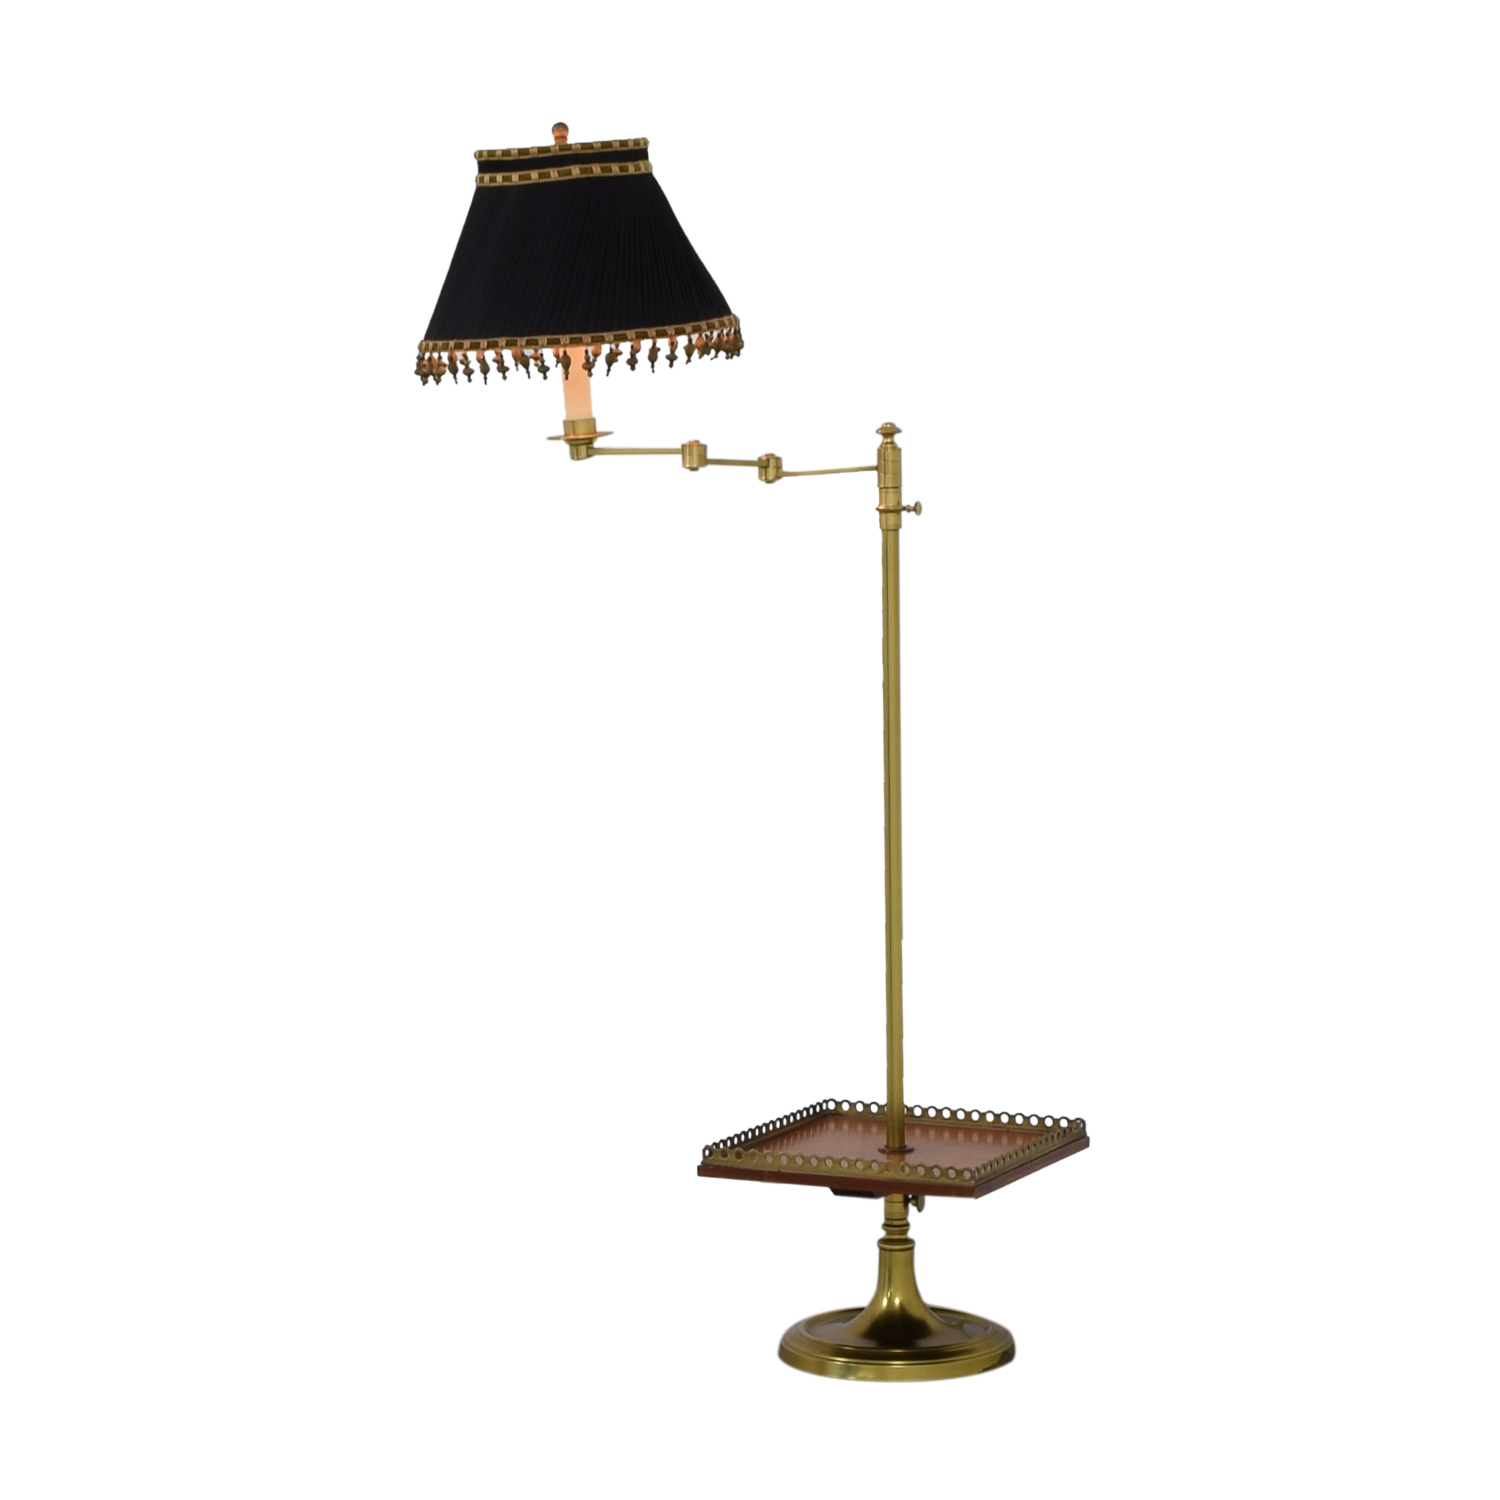 Brass Table Lamp with Tray / Lamps